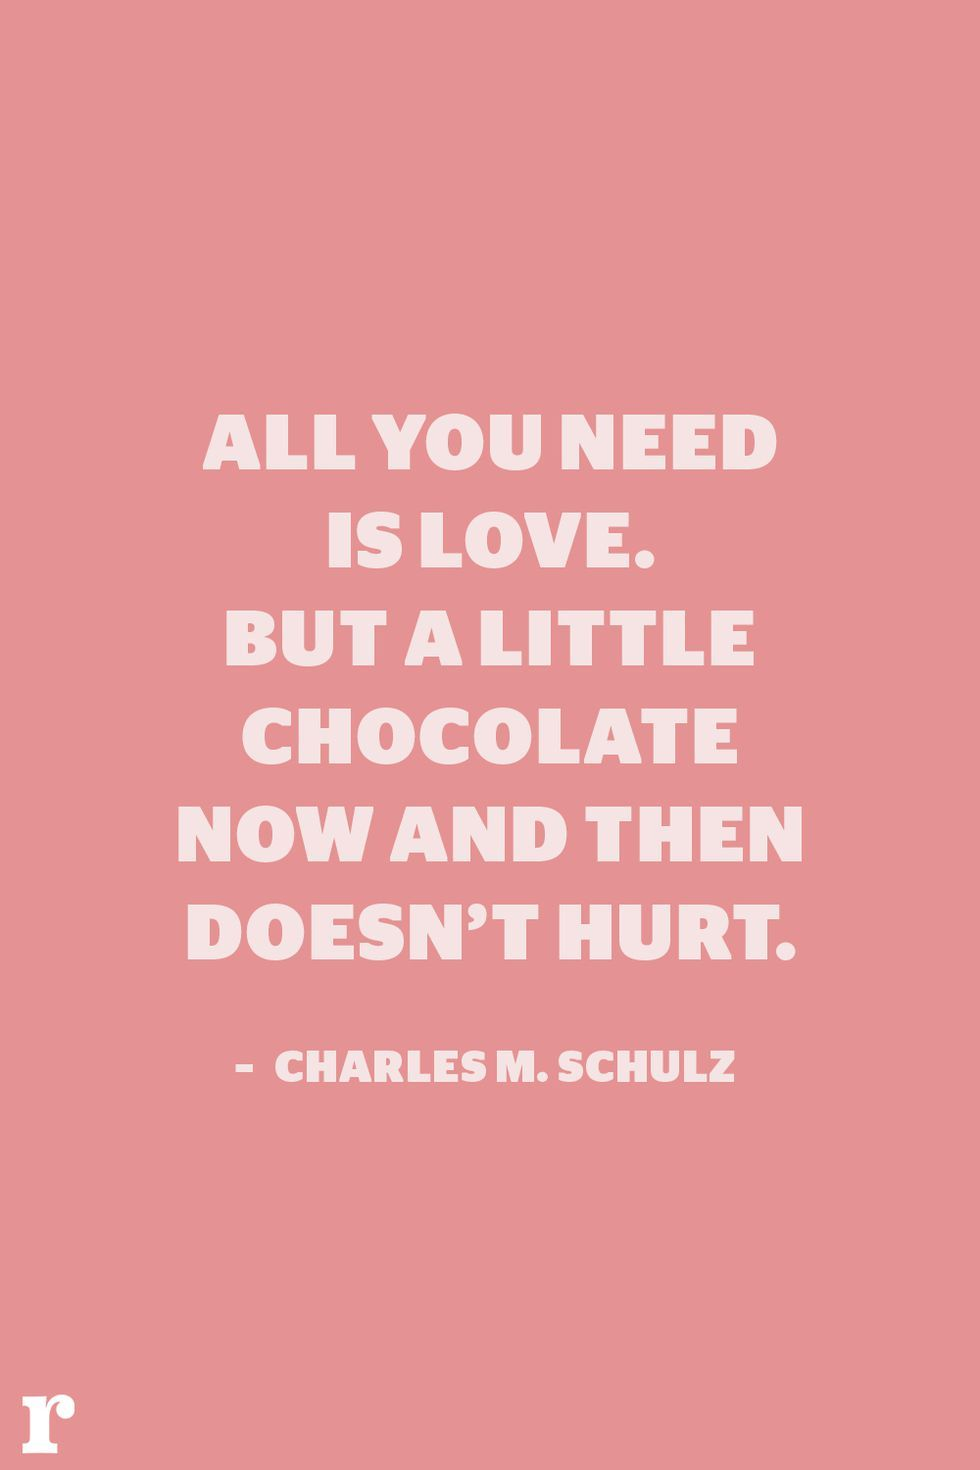 15 Funny Valentine's Day Quotes to Warm Your Cold, Dead Heart